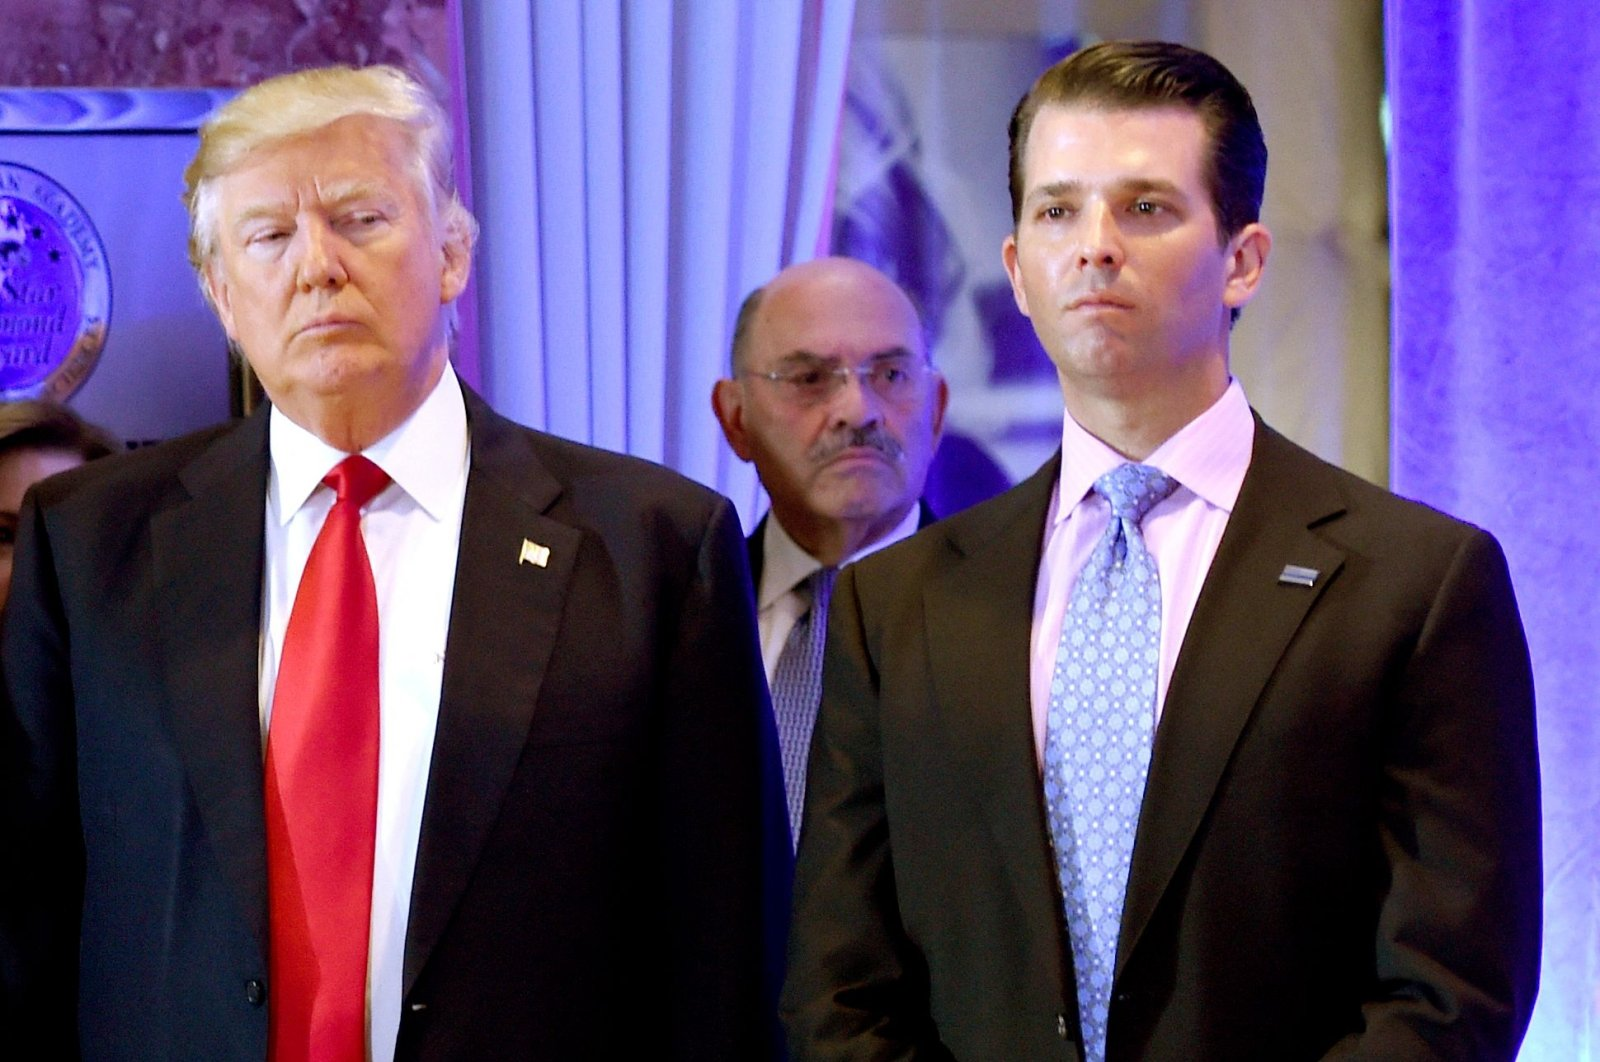 Former U.S. President Donald Trump and his son Donald, Jr., arrive for a press conference at Trump Tower in New York, as Allen Weisselberg (C), chief financial officer of The Trump Organization, looks on, New York, U.S., Jan. 11, 2017. (AFP Photo)